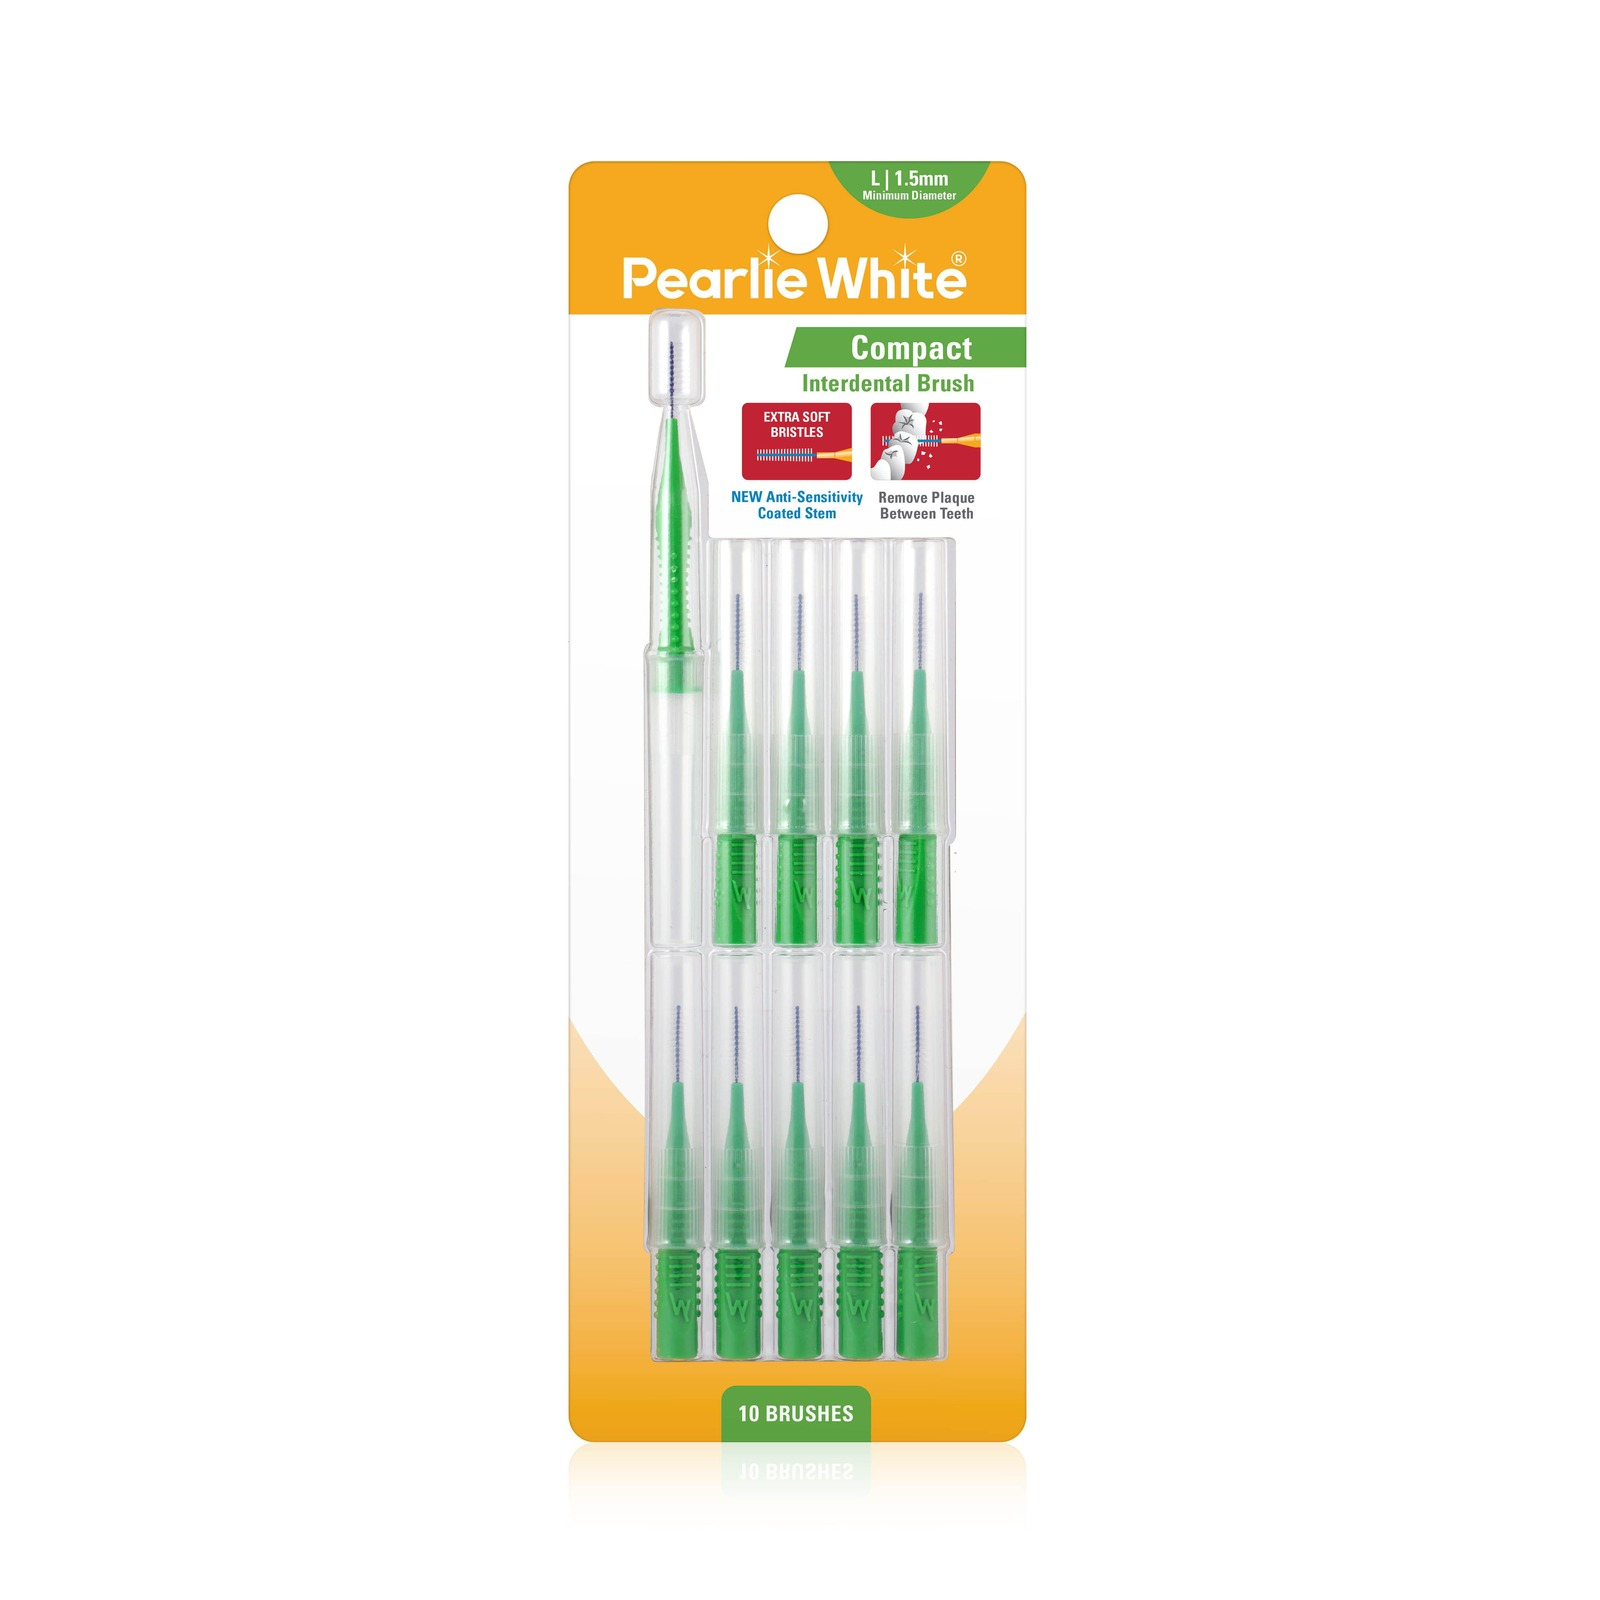 Pearlie White Compact Interdental Brushes L 1.5mm